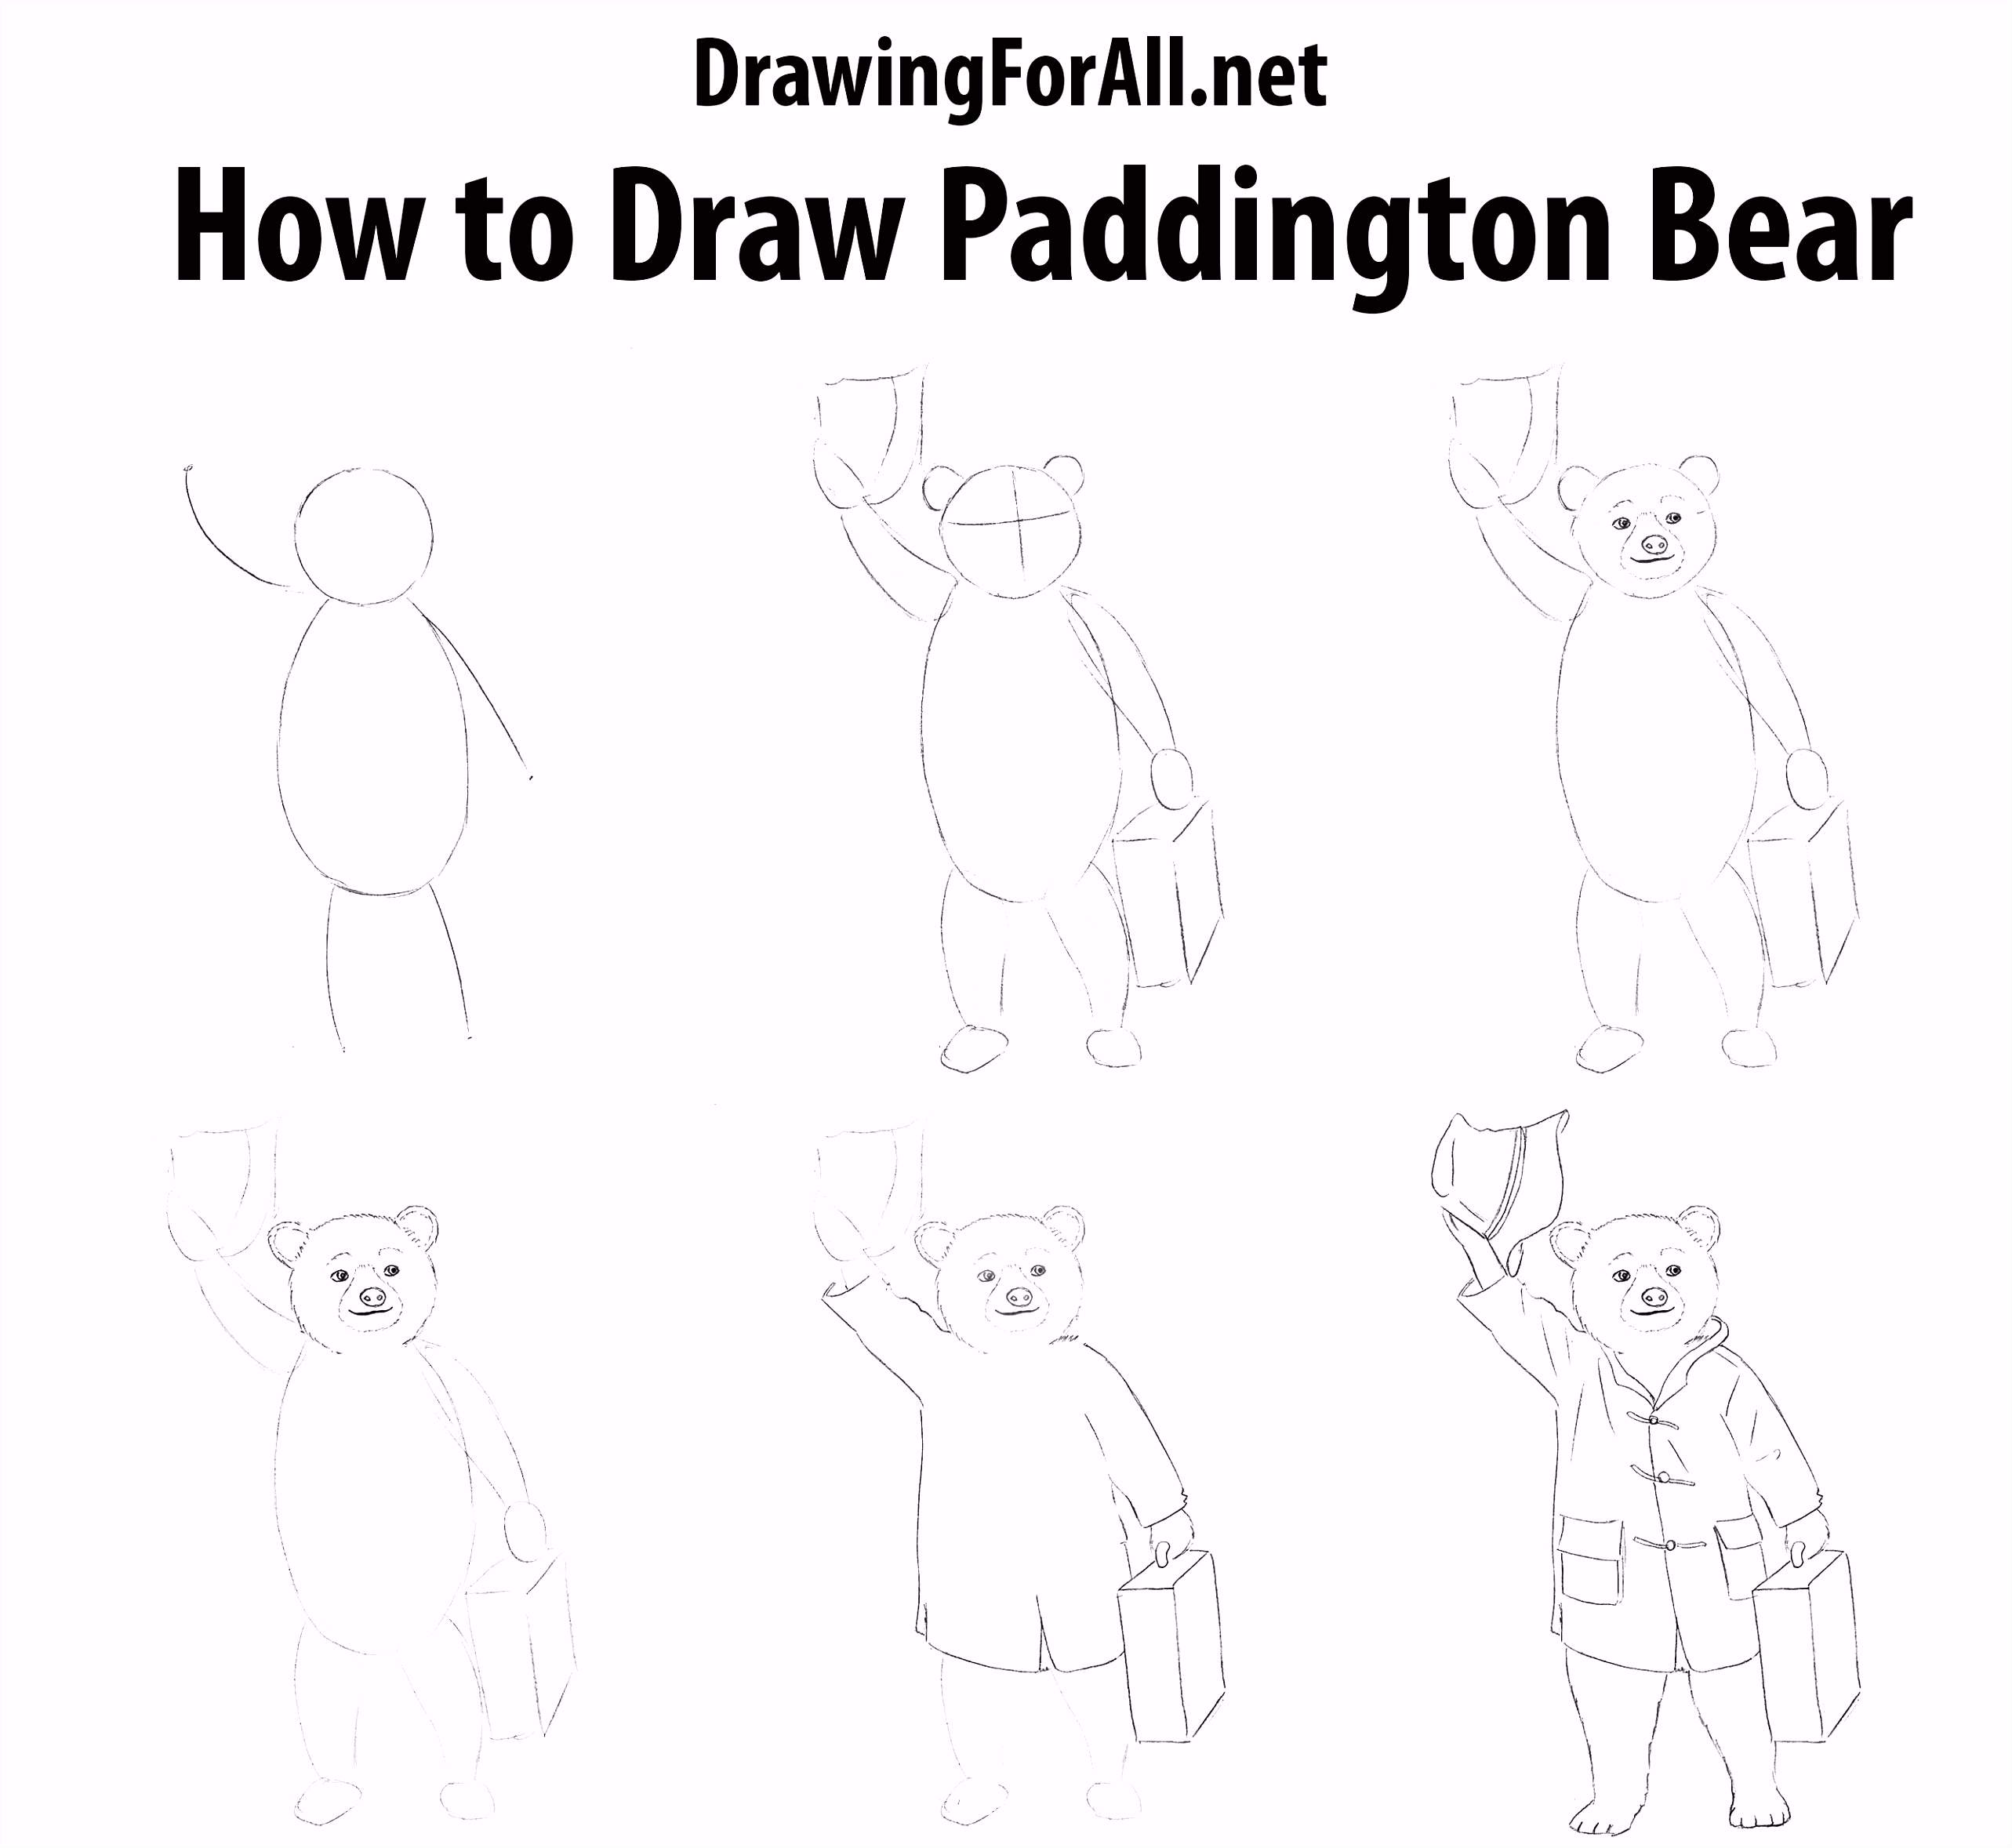 How to Draw Paddington Bear How To Draw Pinterest